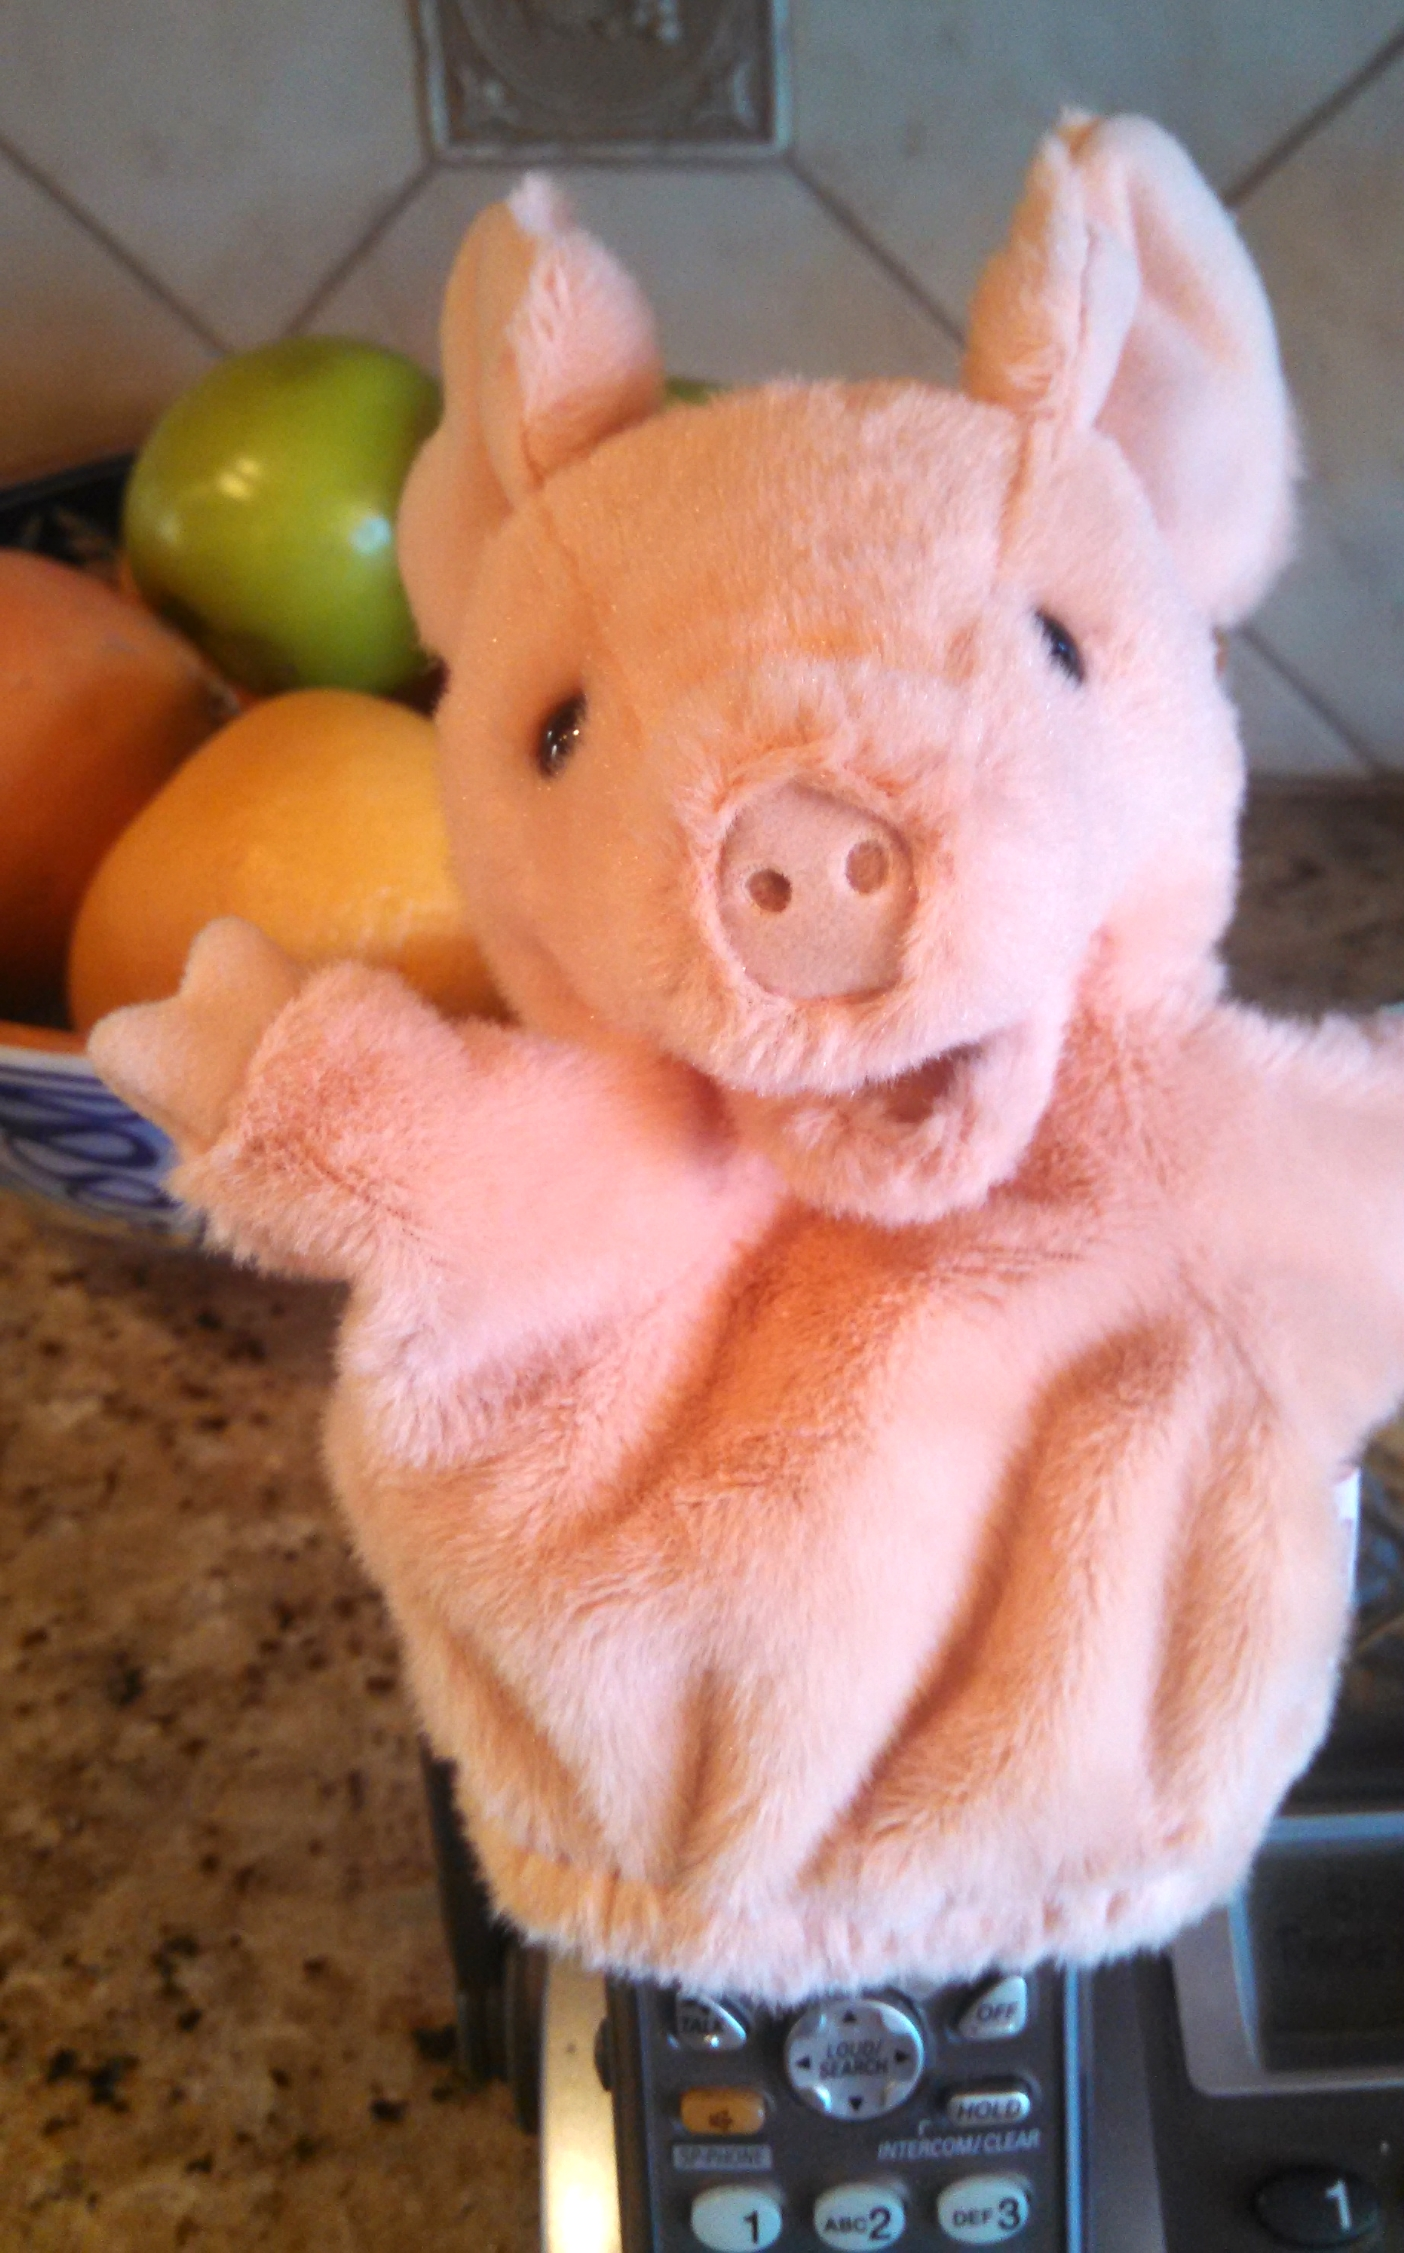 Piglet the puppet is a perfect kitchen pal